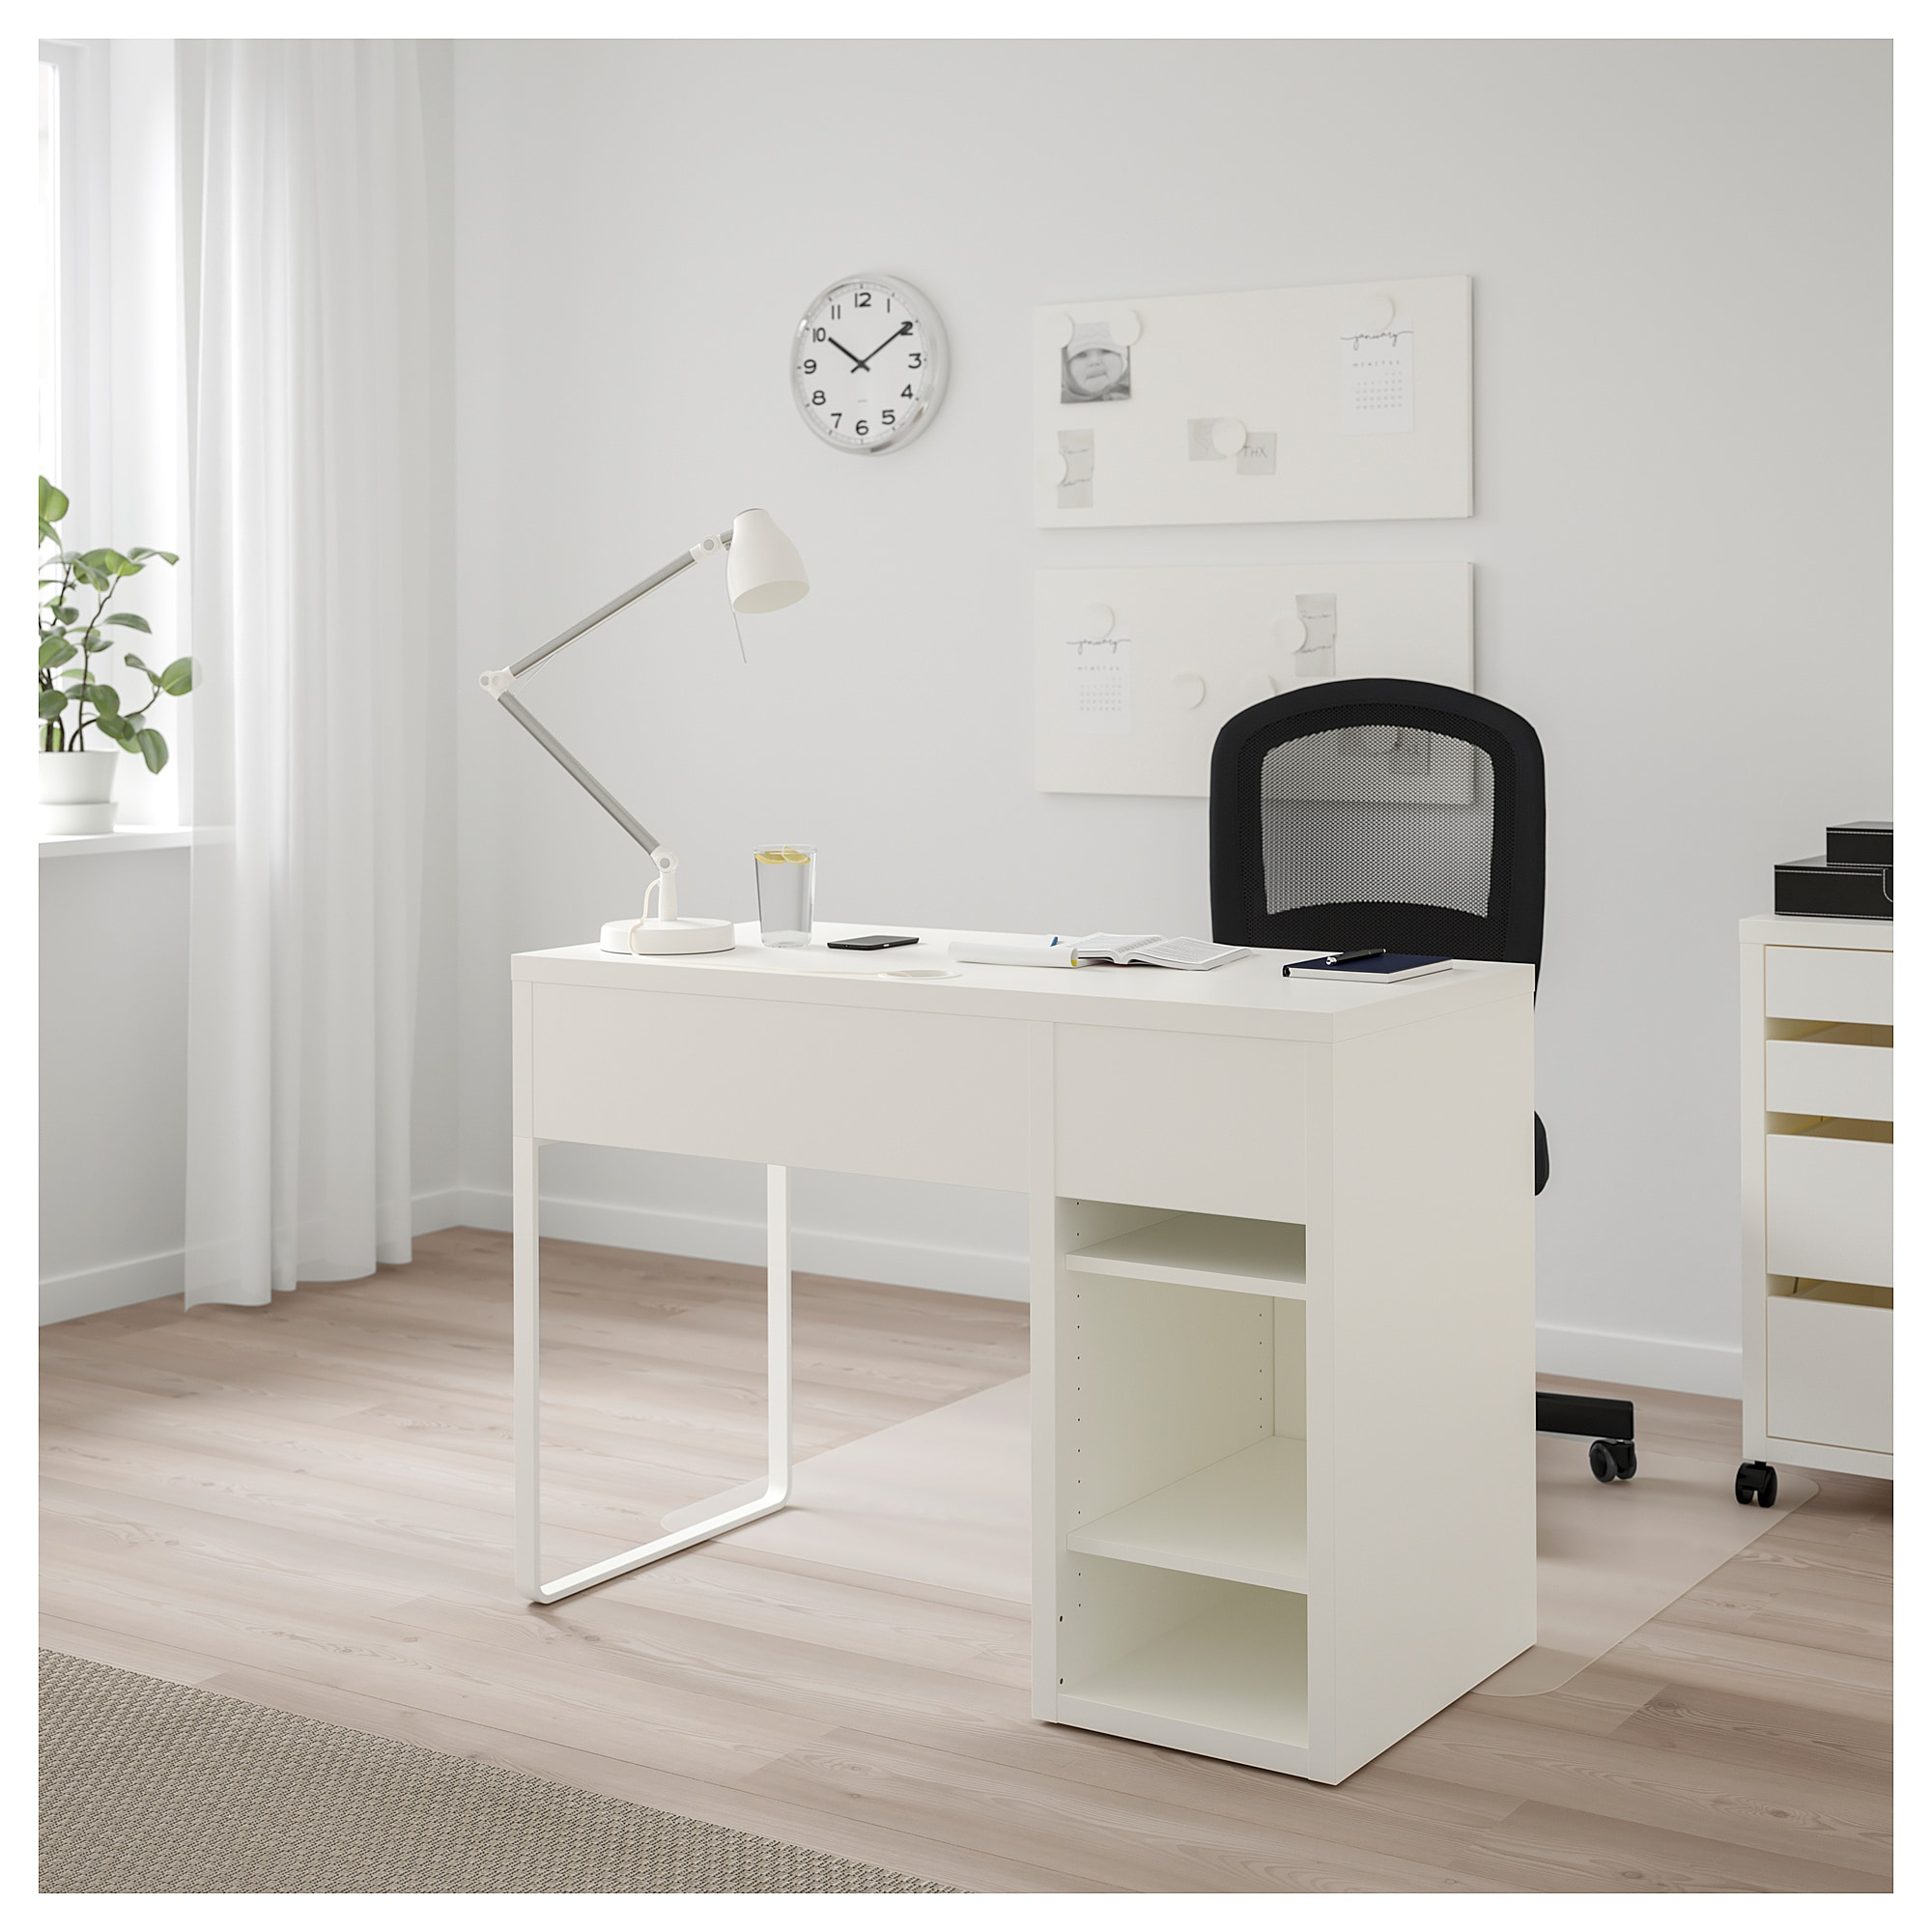 Micke Desk White Ikea Spacesaving Design Simplifies Inwall Wiring And Keeps Messy Cables